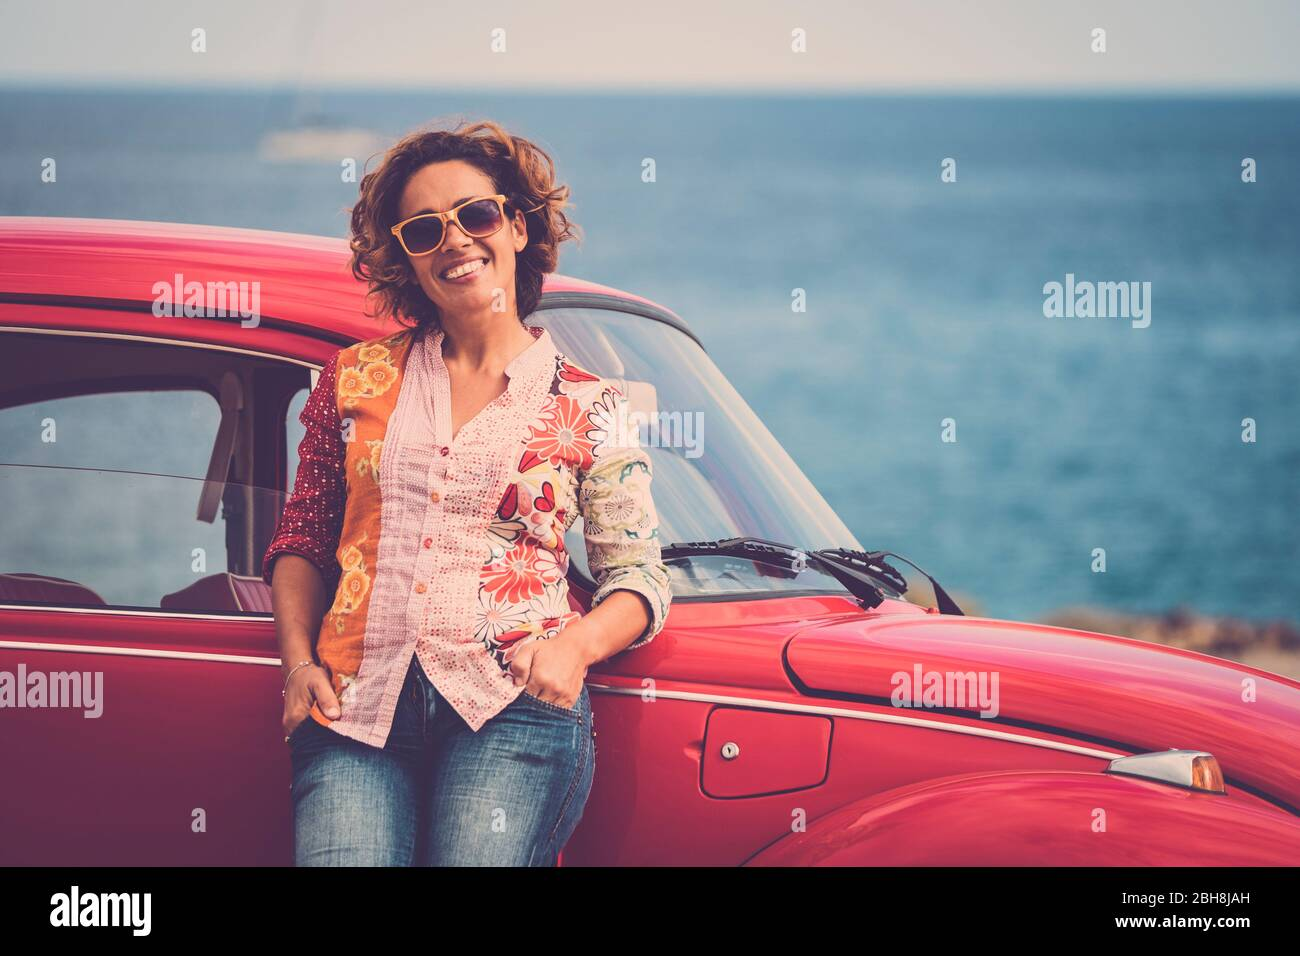 Beautiful caucasian middle age lady driver pose standing with a red legendary retro vintage car behind - ocean in background for travel and alternative lifesyle concept Stock Photo